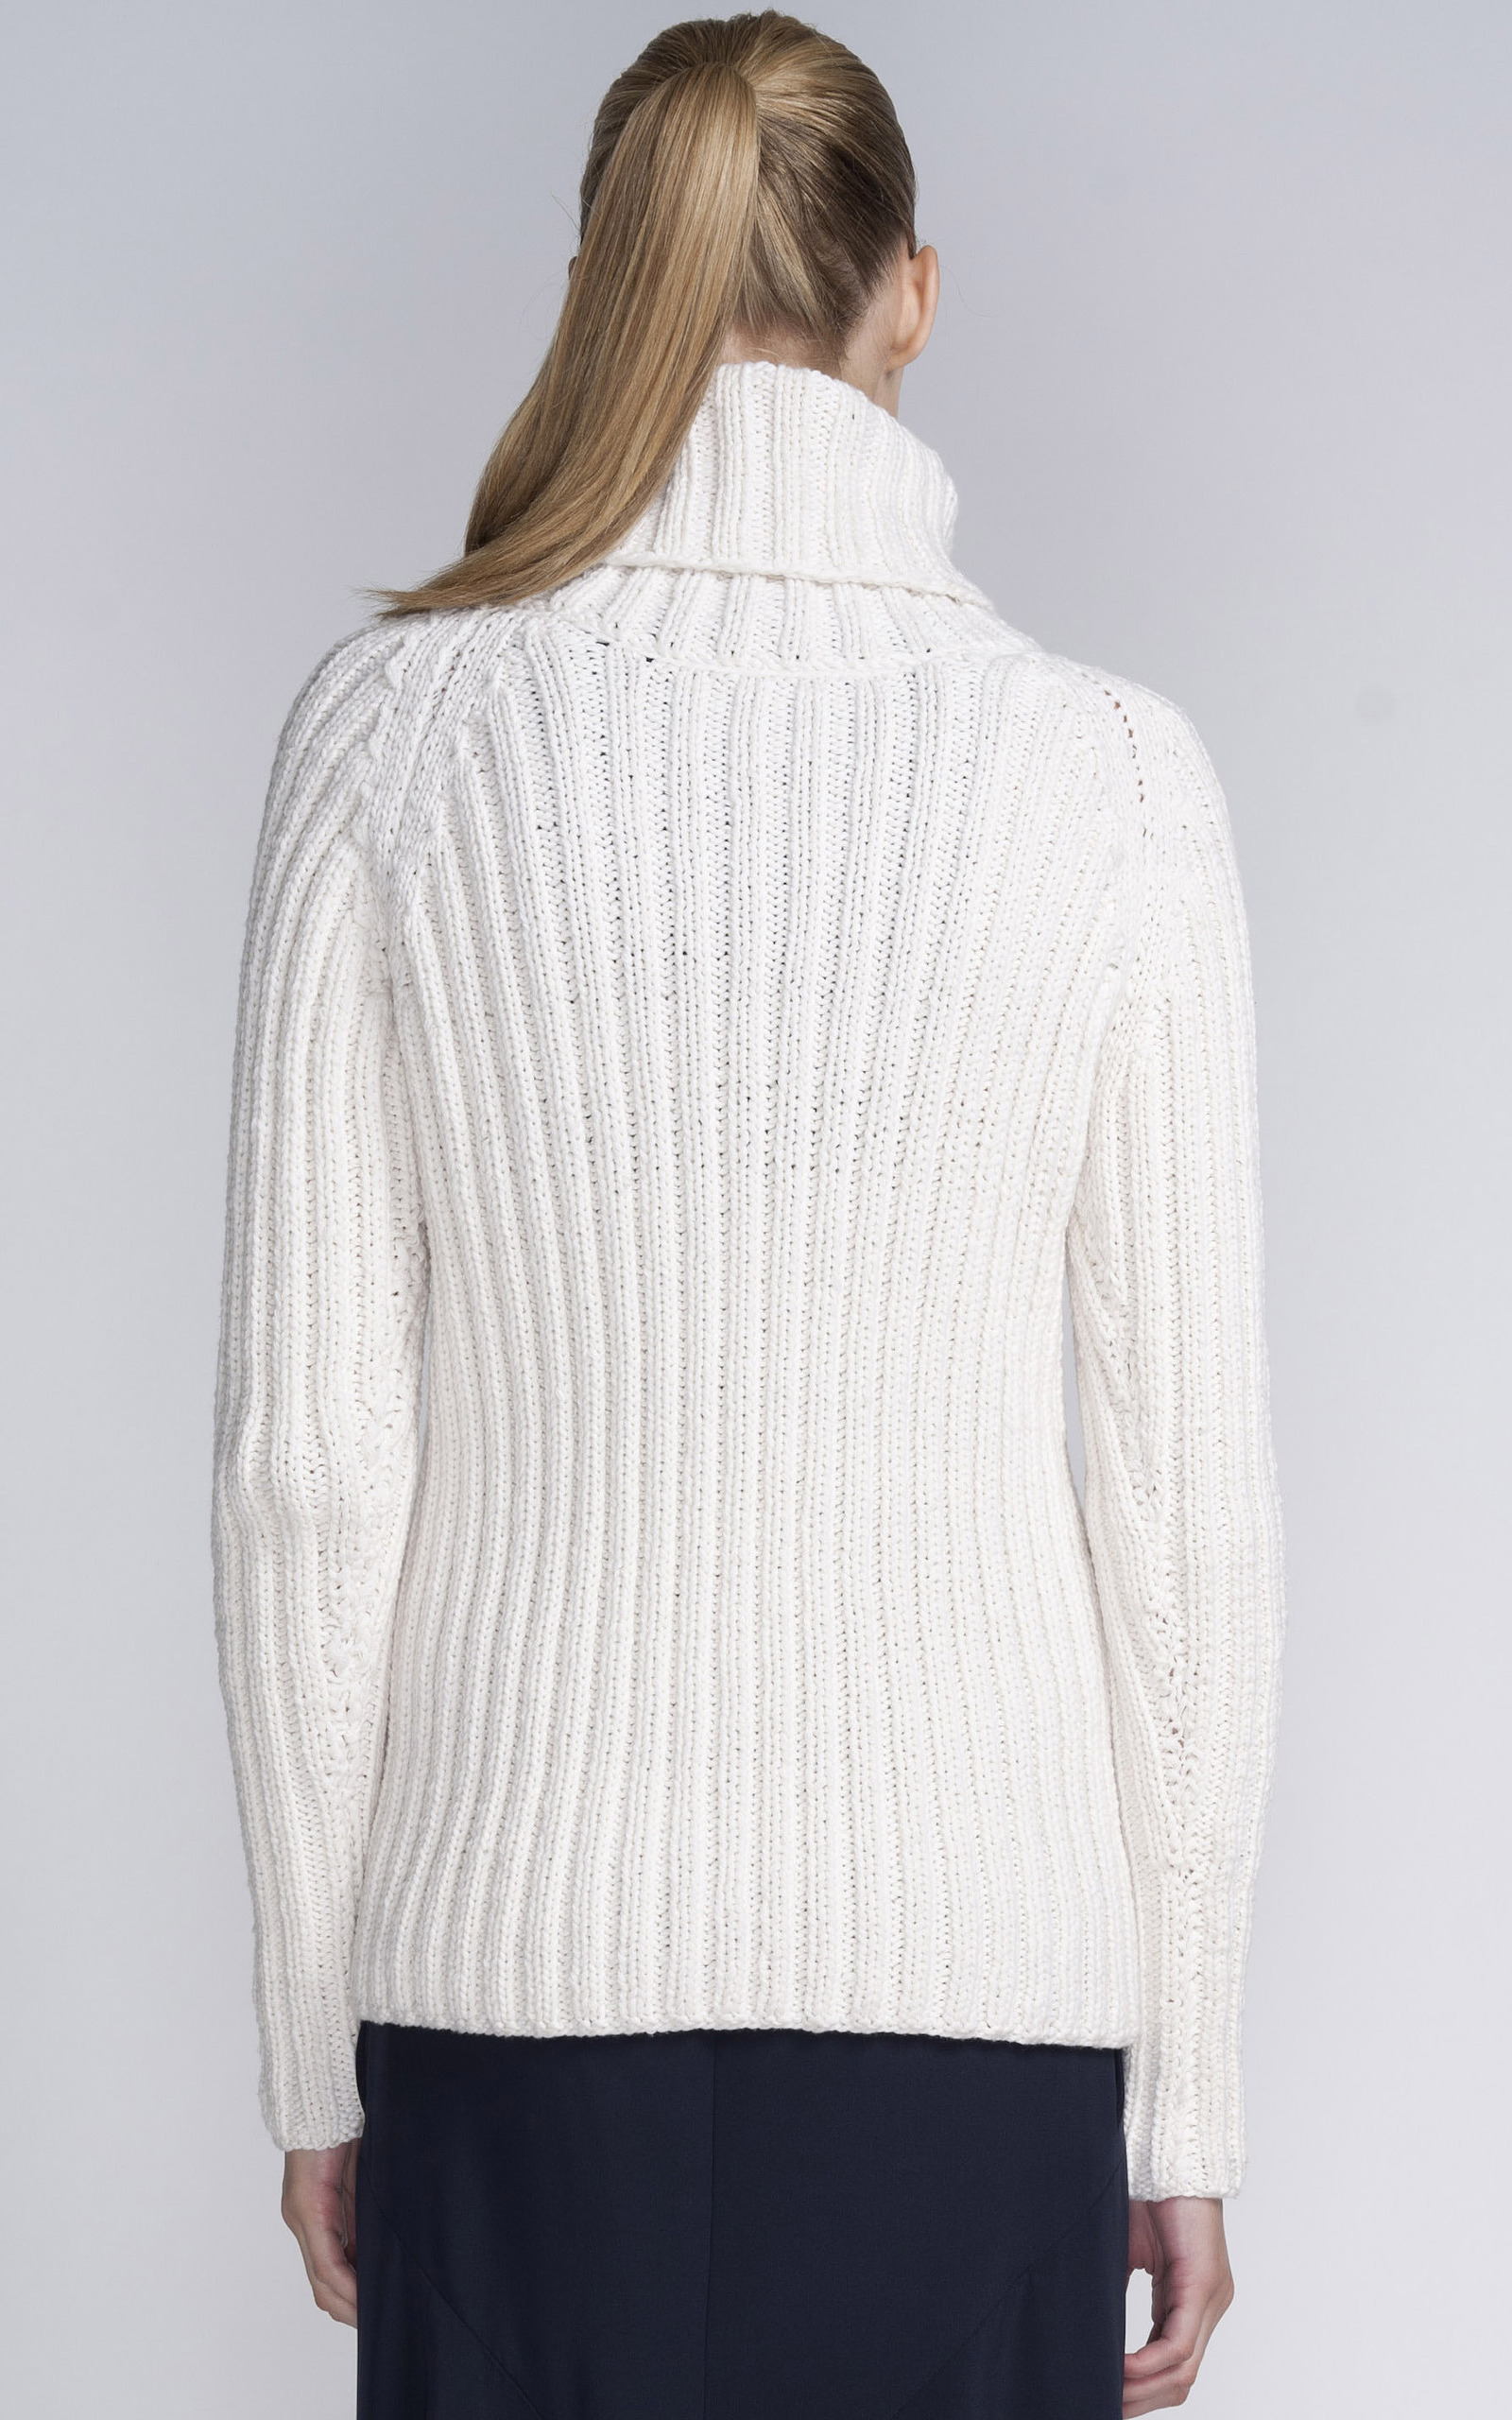 Wide Ribbed Turtleneck Sweater - English Sweater Vest